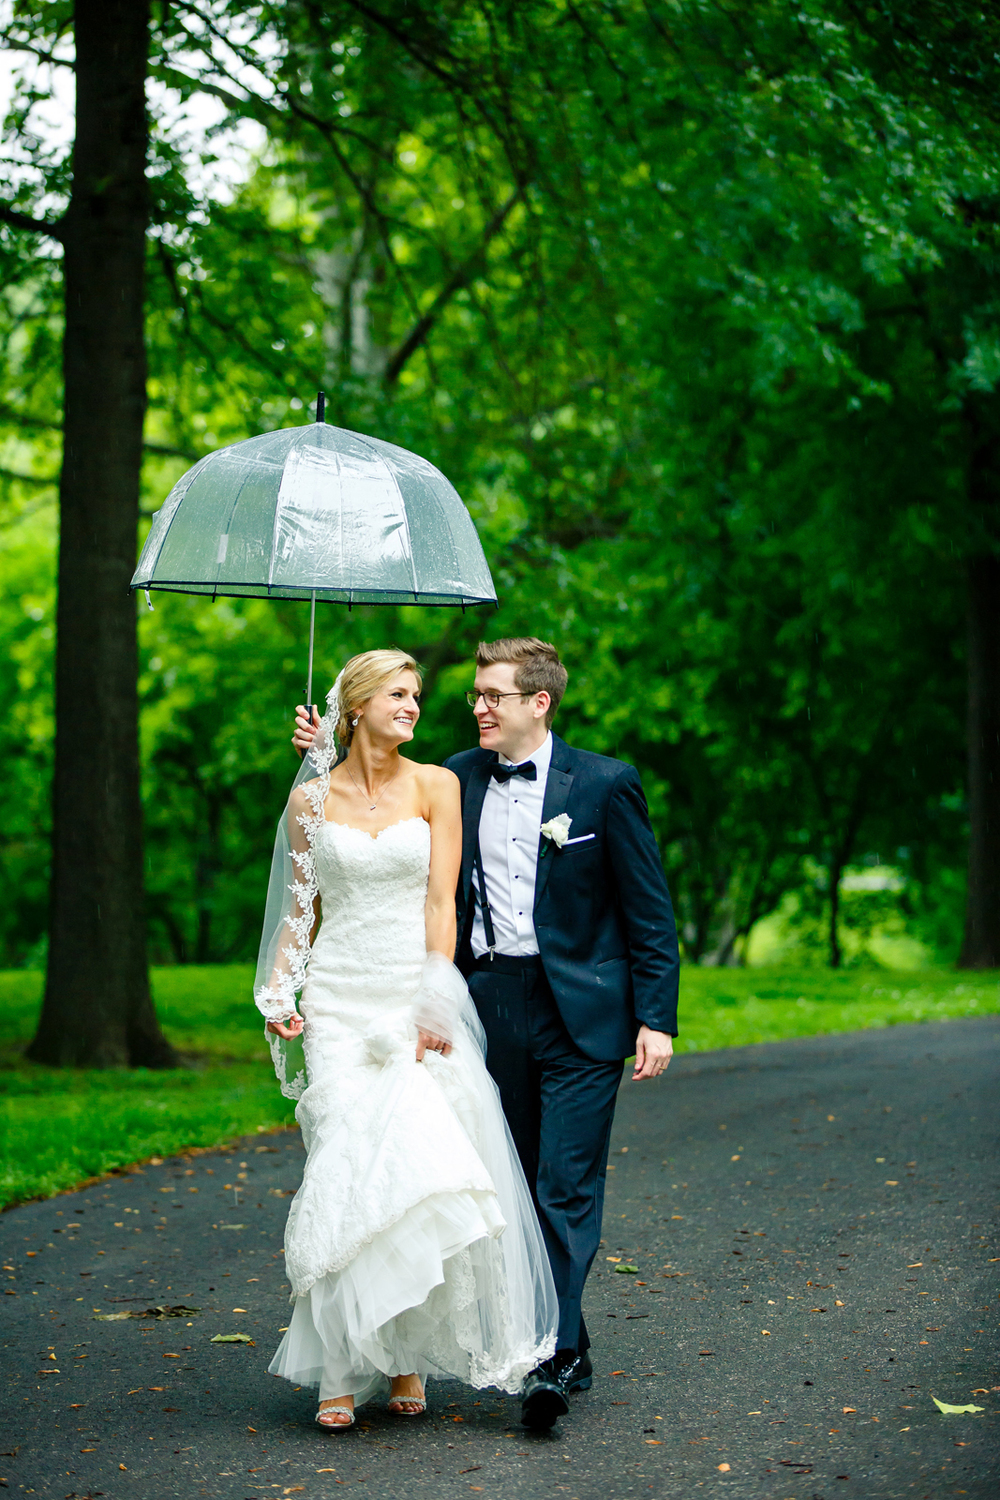 Umbrella Wedding Day Bride Groom Lafayette Square Park St. Louis Wedding Photographers by Oldani Photography 2.jpg